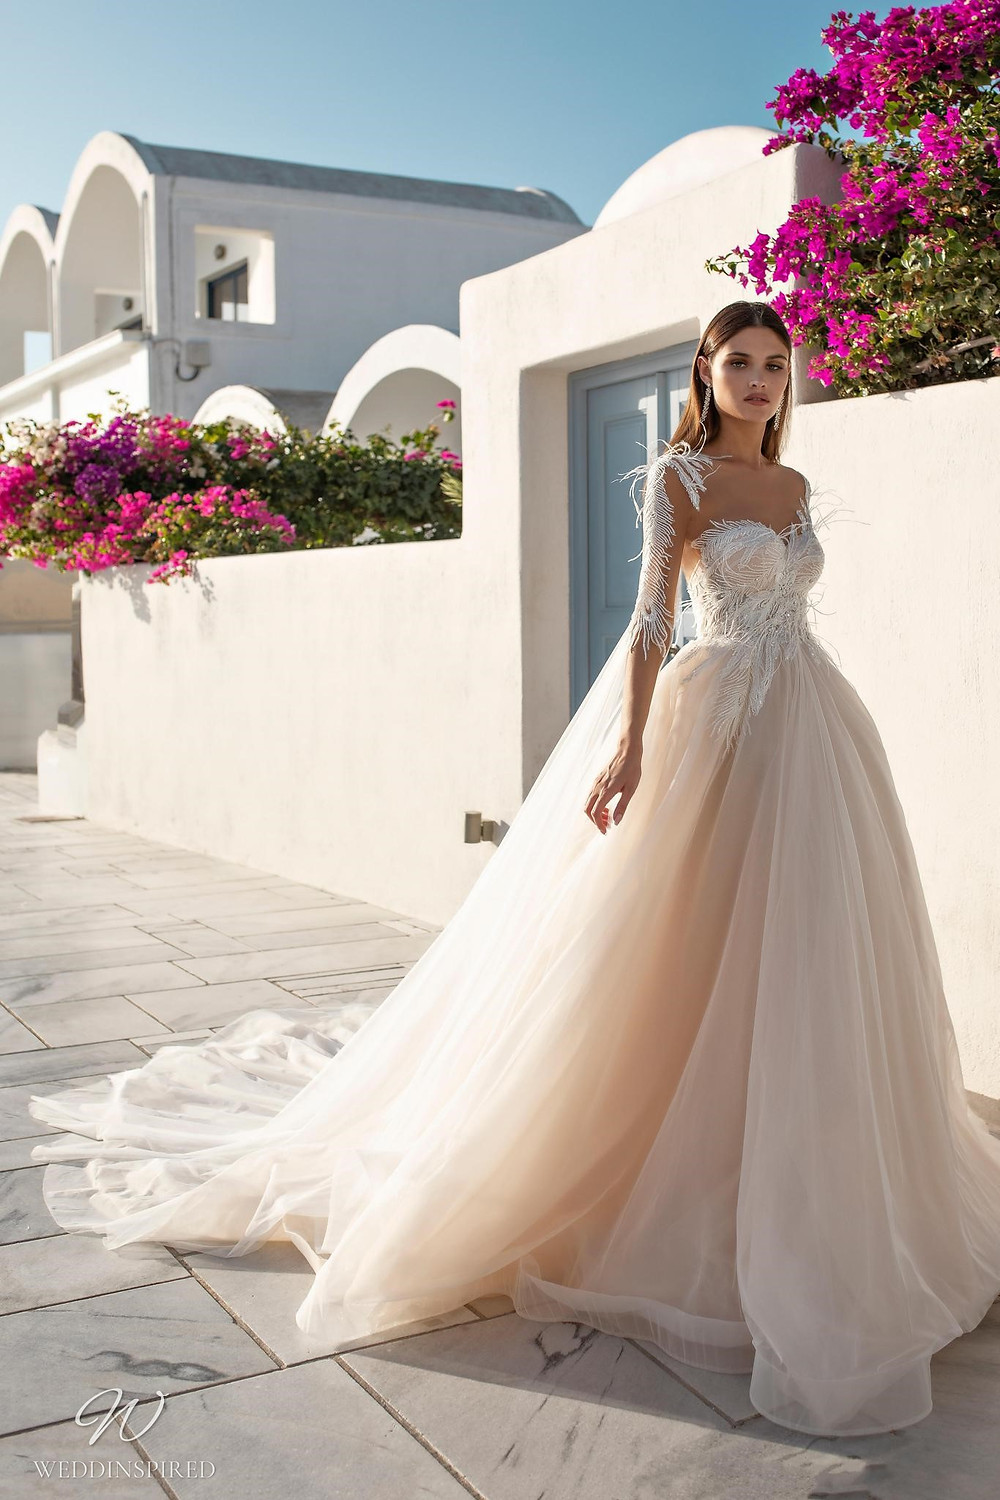 A Ricca Sposa romantic blush tulle ball gown wedding dress with a sweetheart neckline, long sleeves and feathers